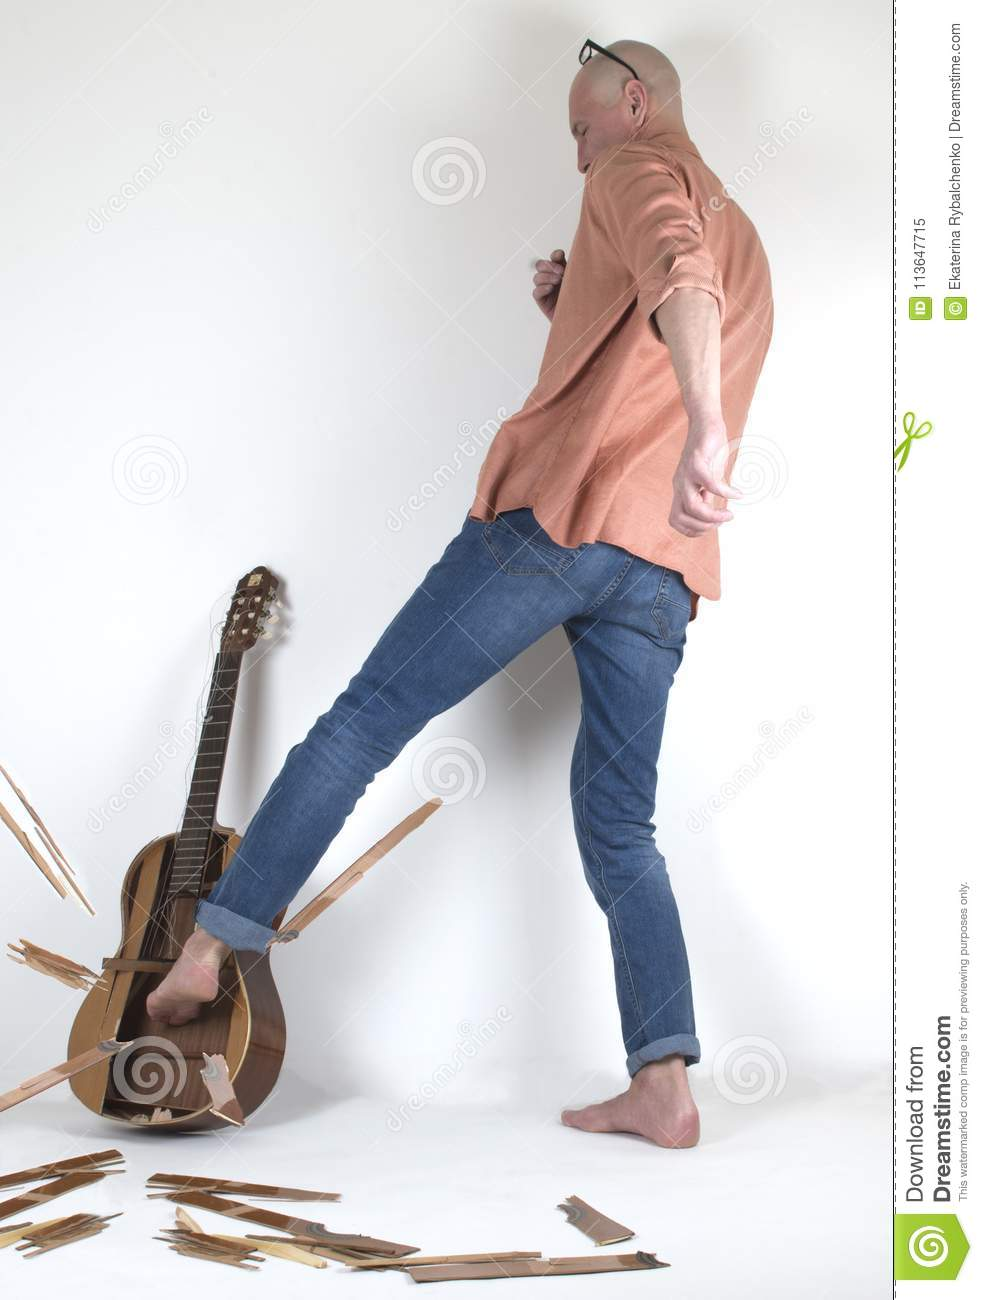 The Man In Despair Breaking Guitar By His Leg Stock Image